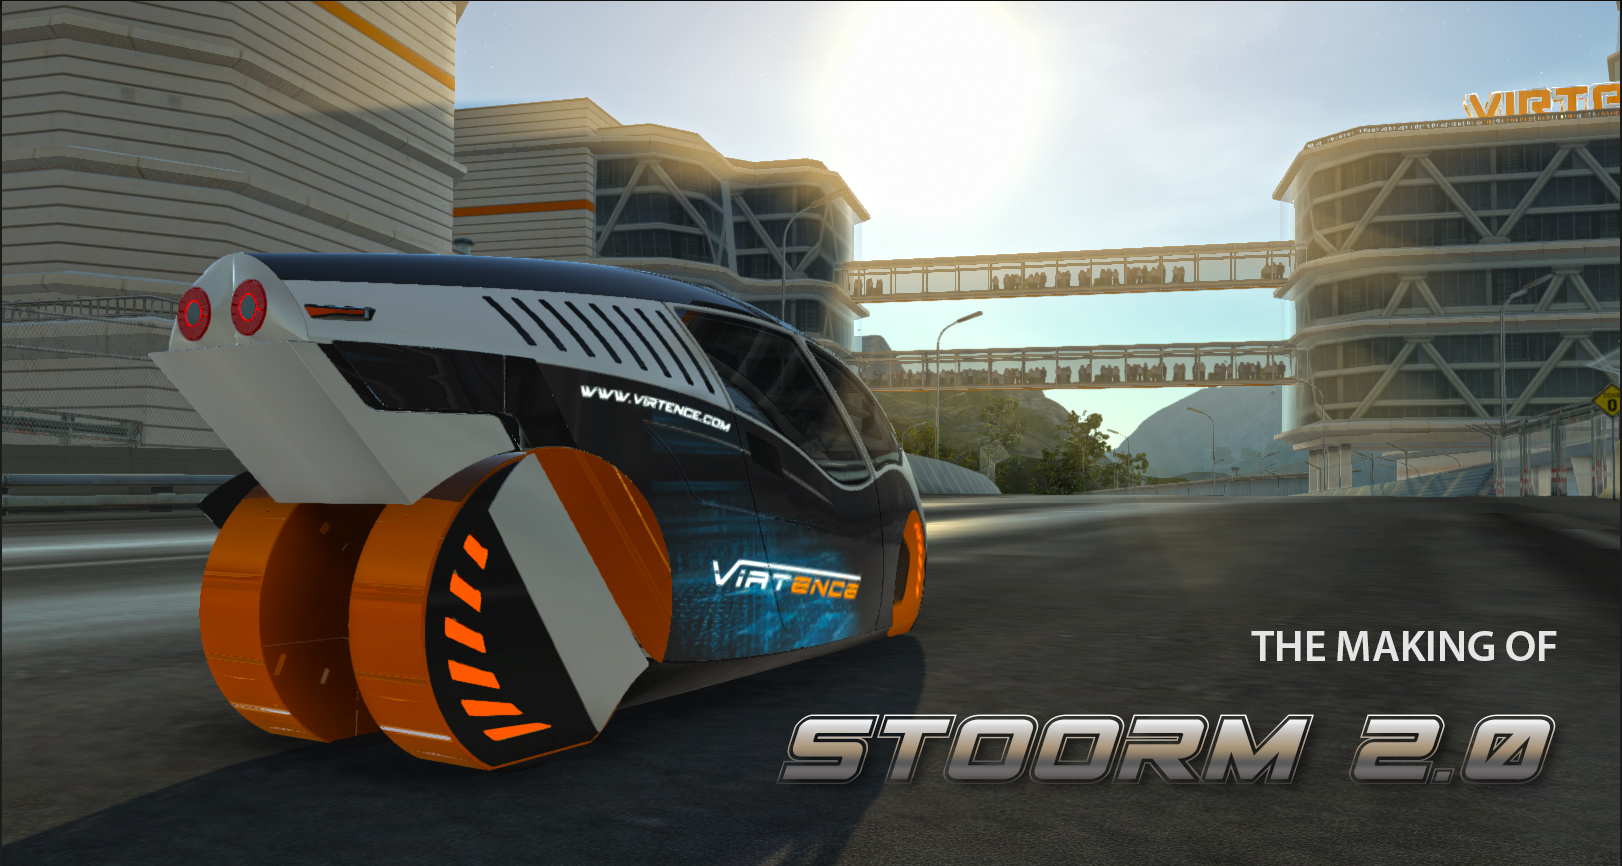 Stoorm 2.0 - Virtual Protoyping